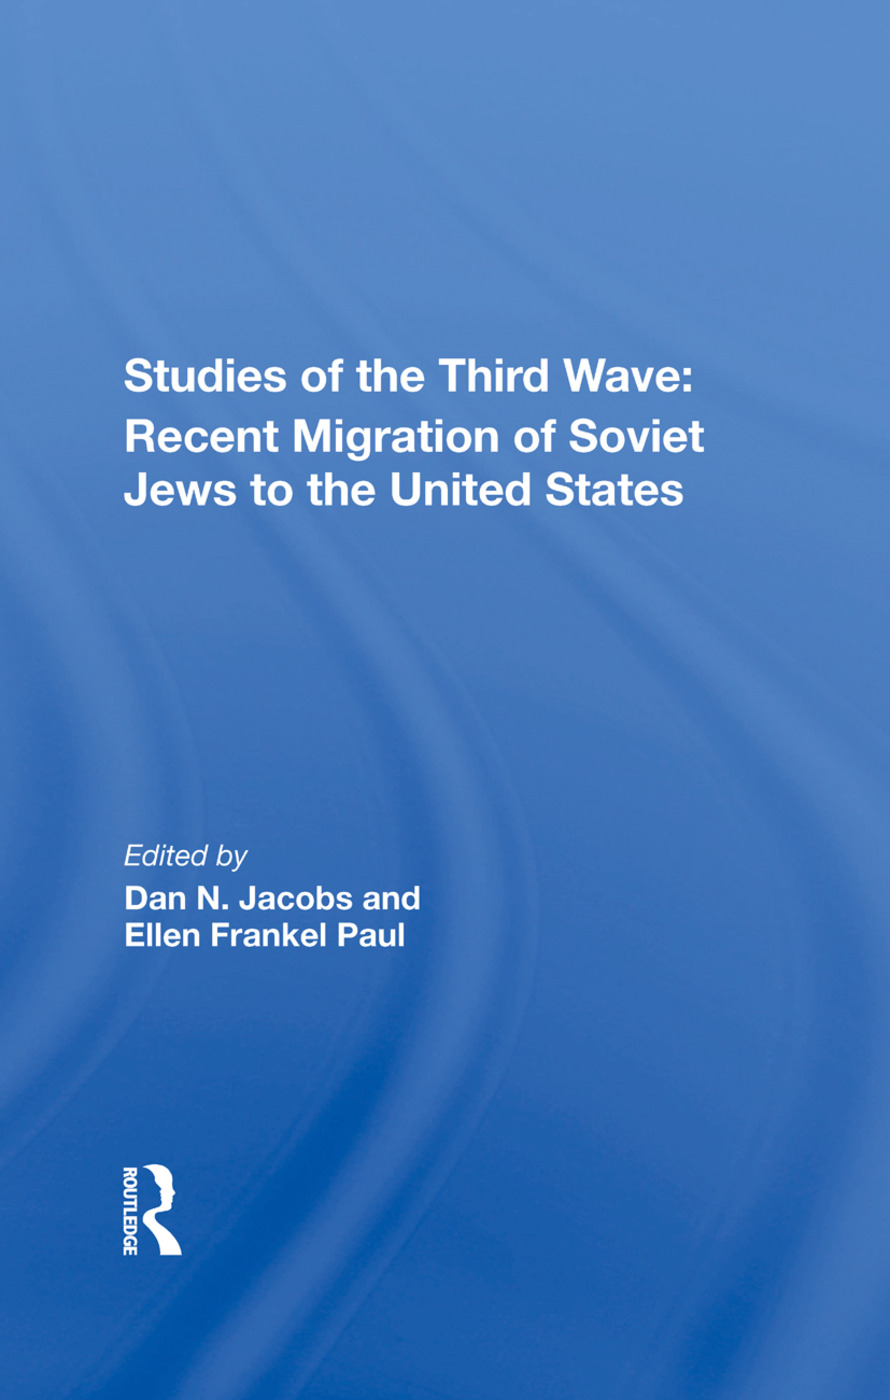 Studies of the Third Wave: Recent Migration of Soviet Jews to the United States